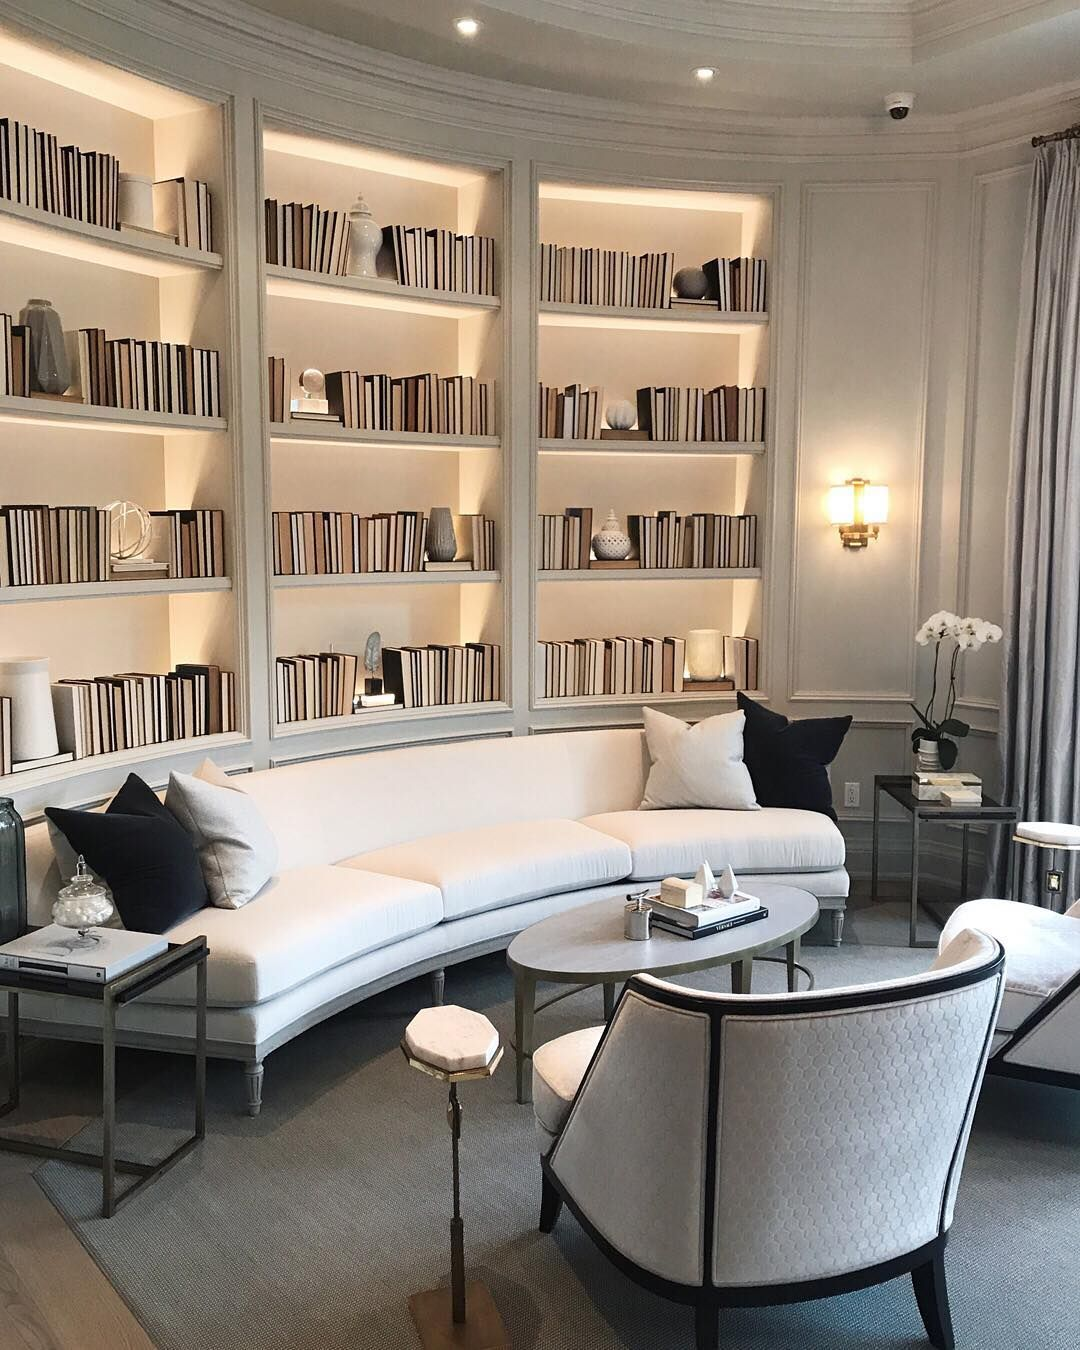 Living Room Library Design Ideas: Beautiful Library Space. Home Interior. Bookshelves